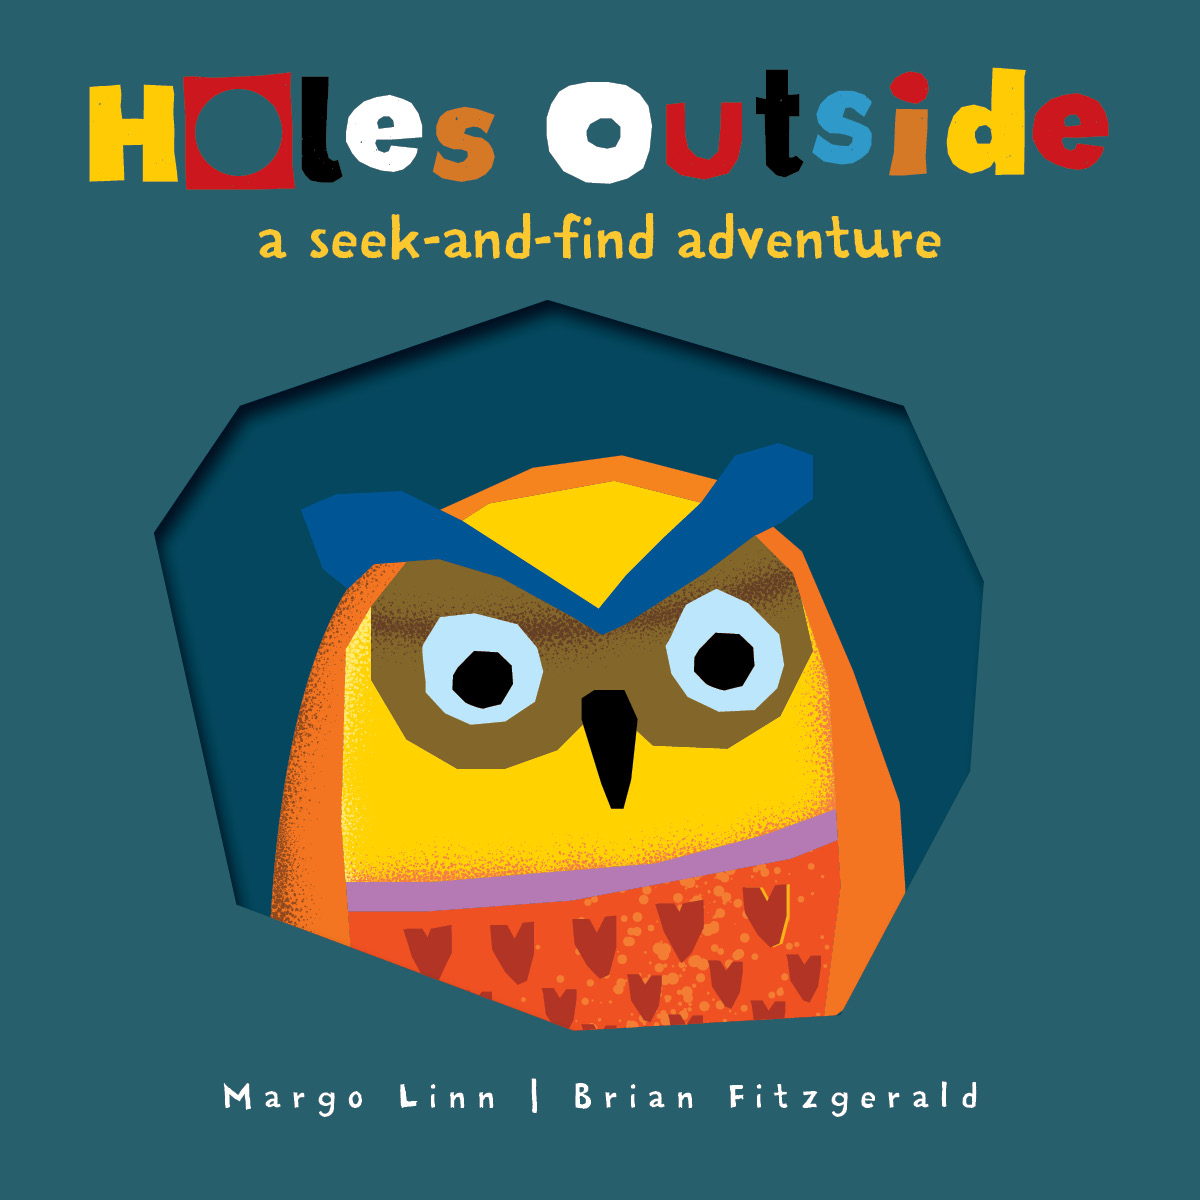 A Search-and-Find Book: Holes Outside